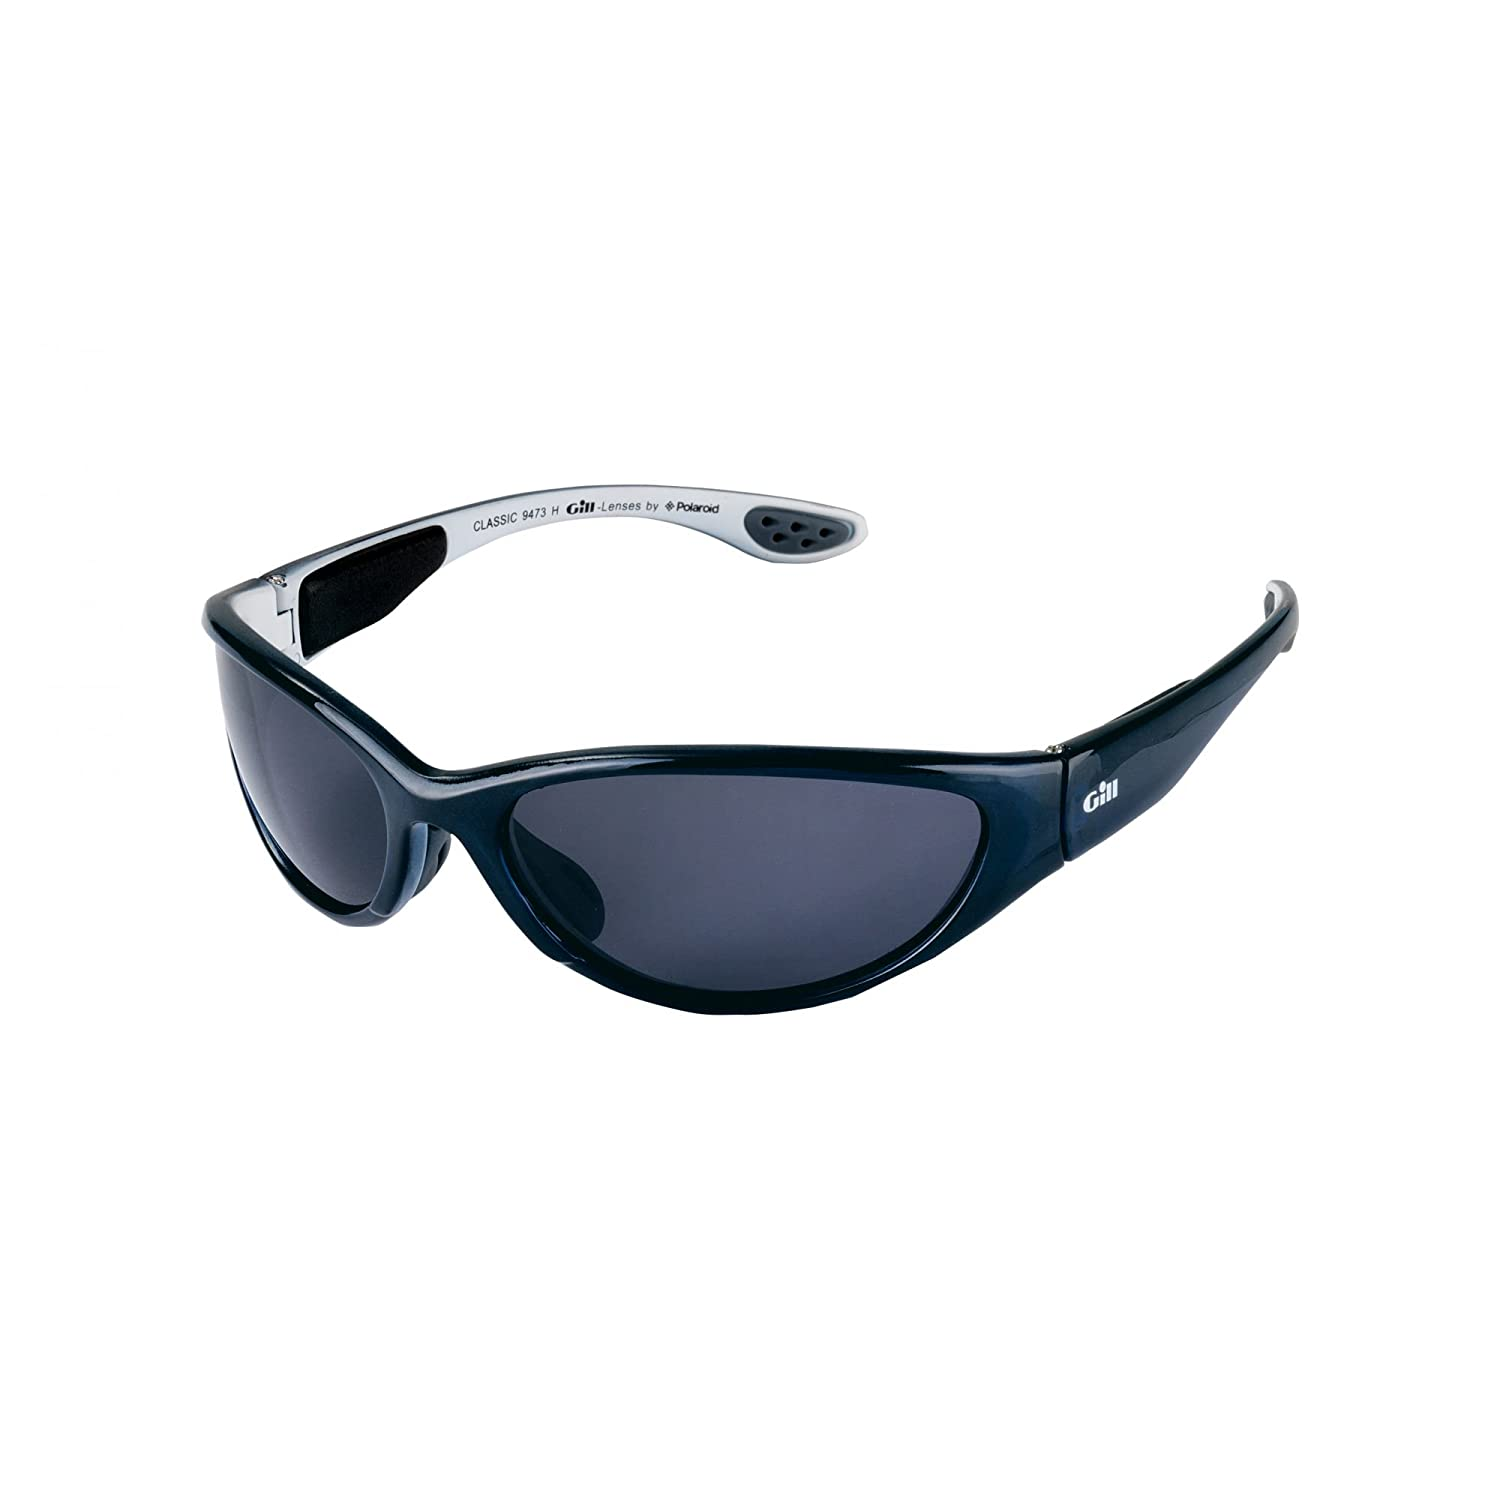 Gill Classic Sunglasses 9473 Colour - Navy/White rAuVgIW